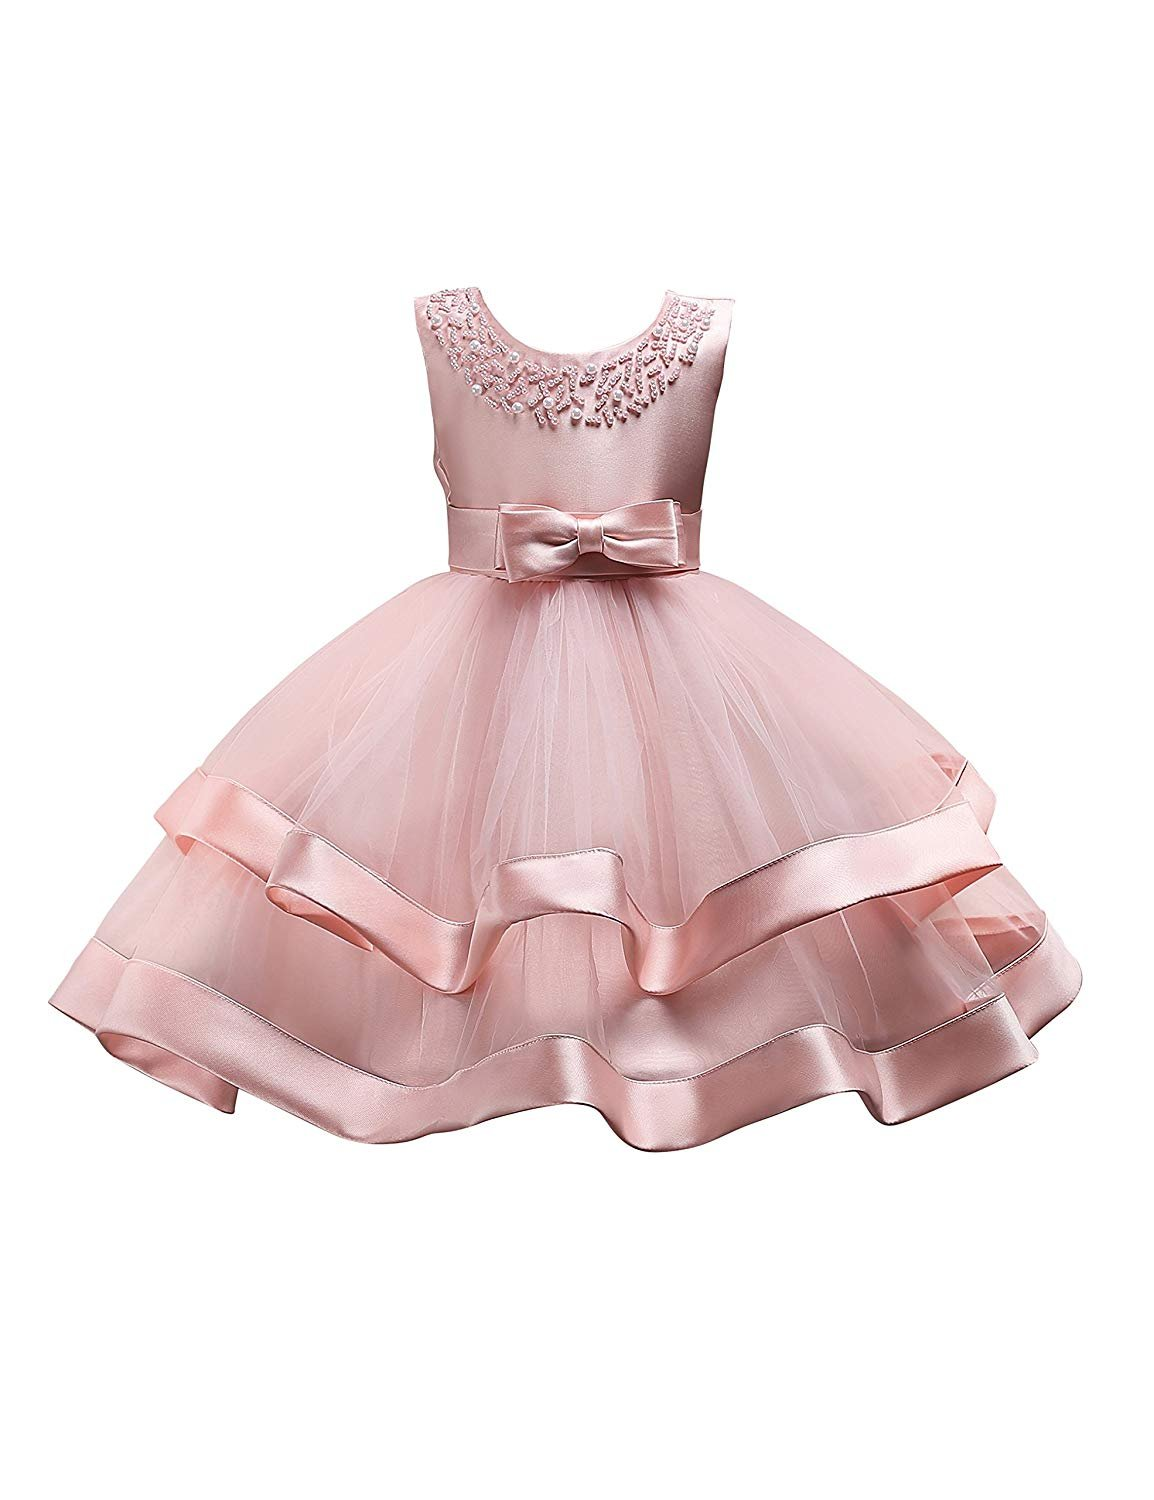 Little Girl Dress Size 6-7 Blush Pink Pageant Party Holiday Graduation Dress For Girls 5T 6T Christmas Gifts Dresses Ball Gowns For Girls Sleeveless Birthday Fancy Tutu Dress 7 Years Old (Pink 30)